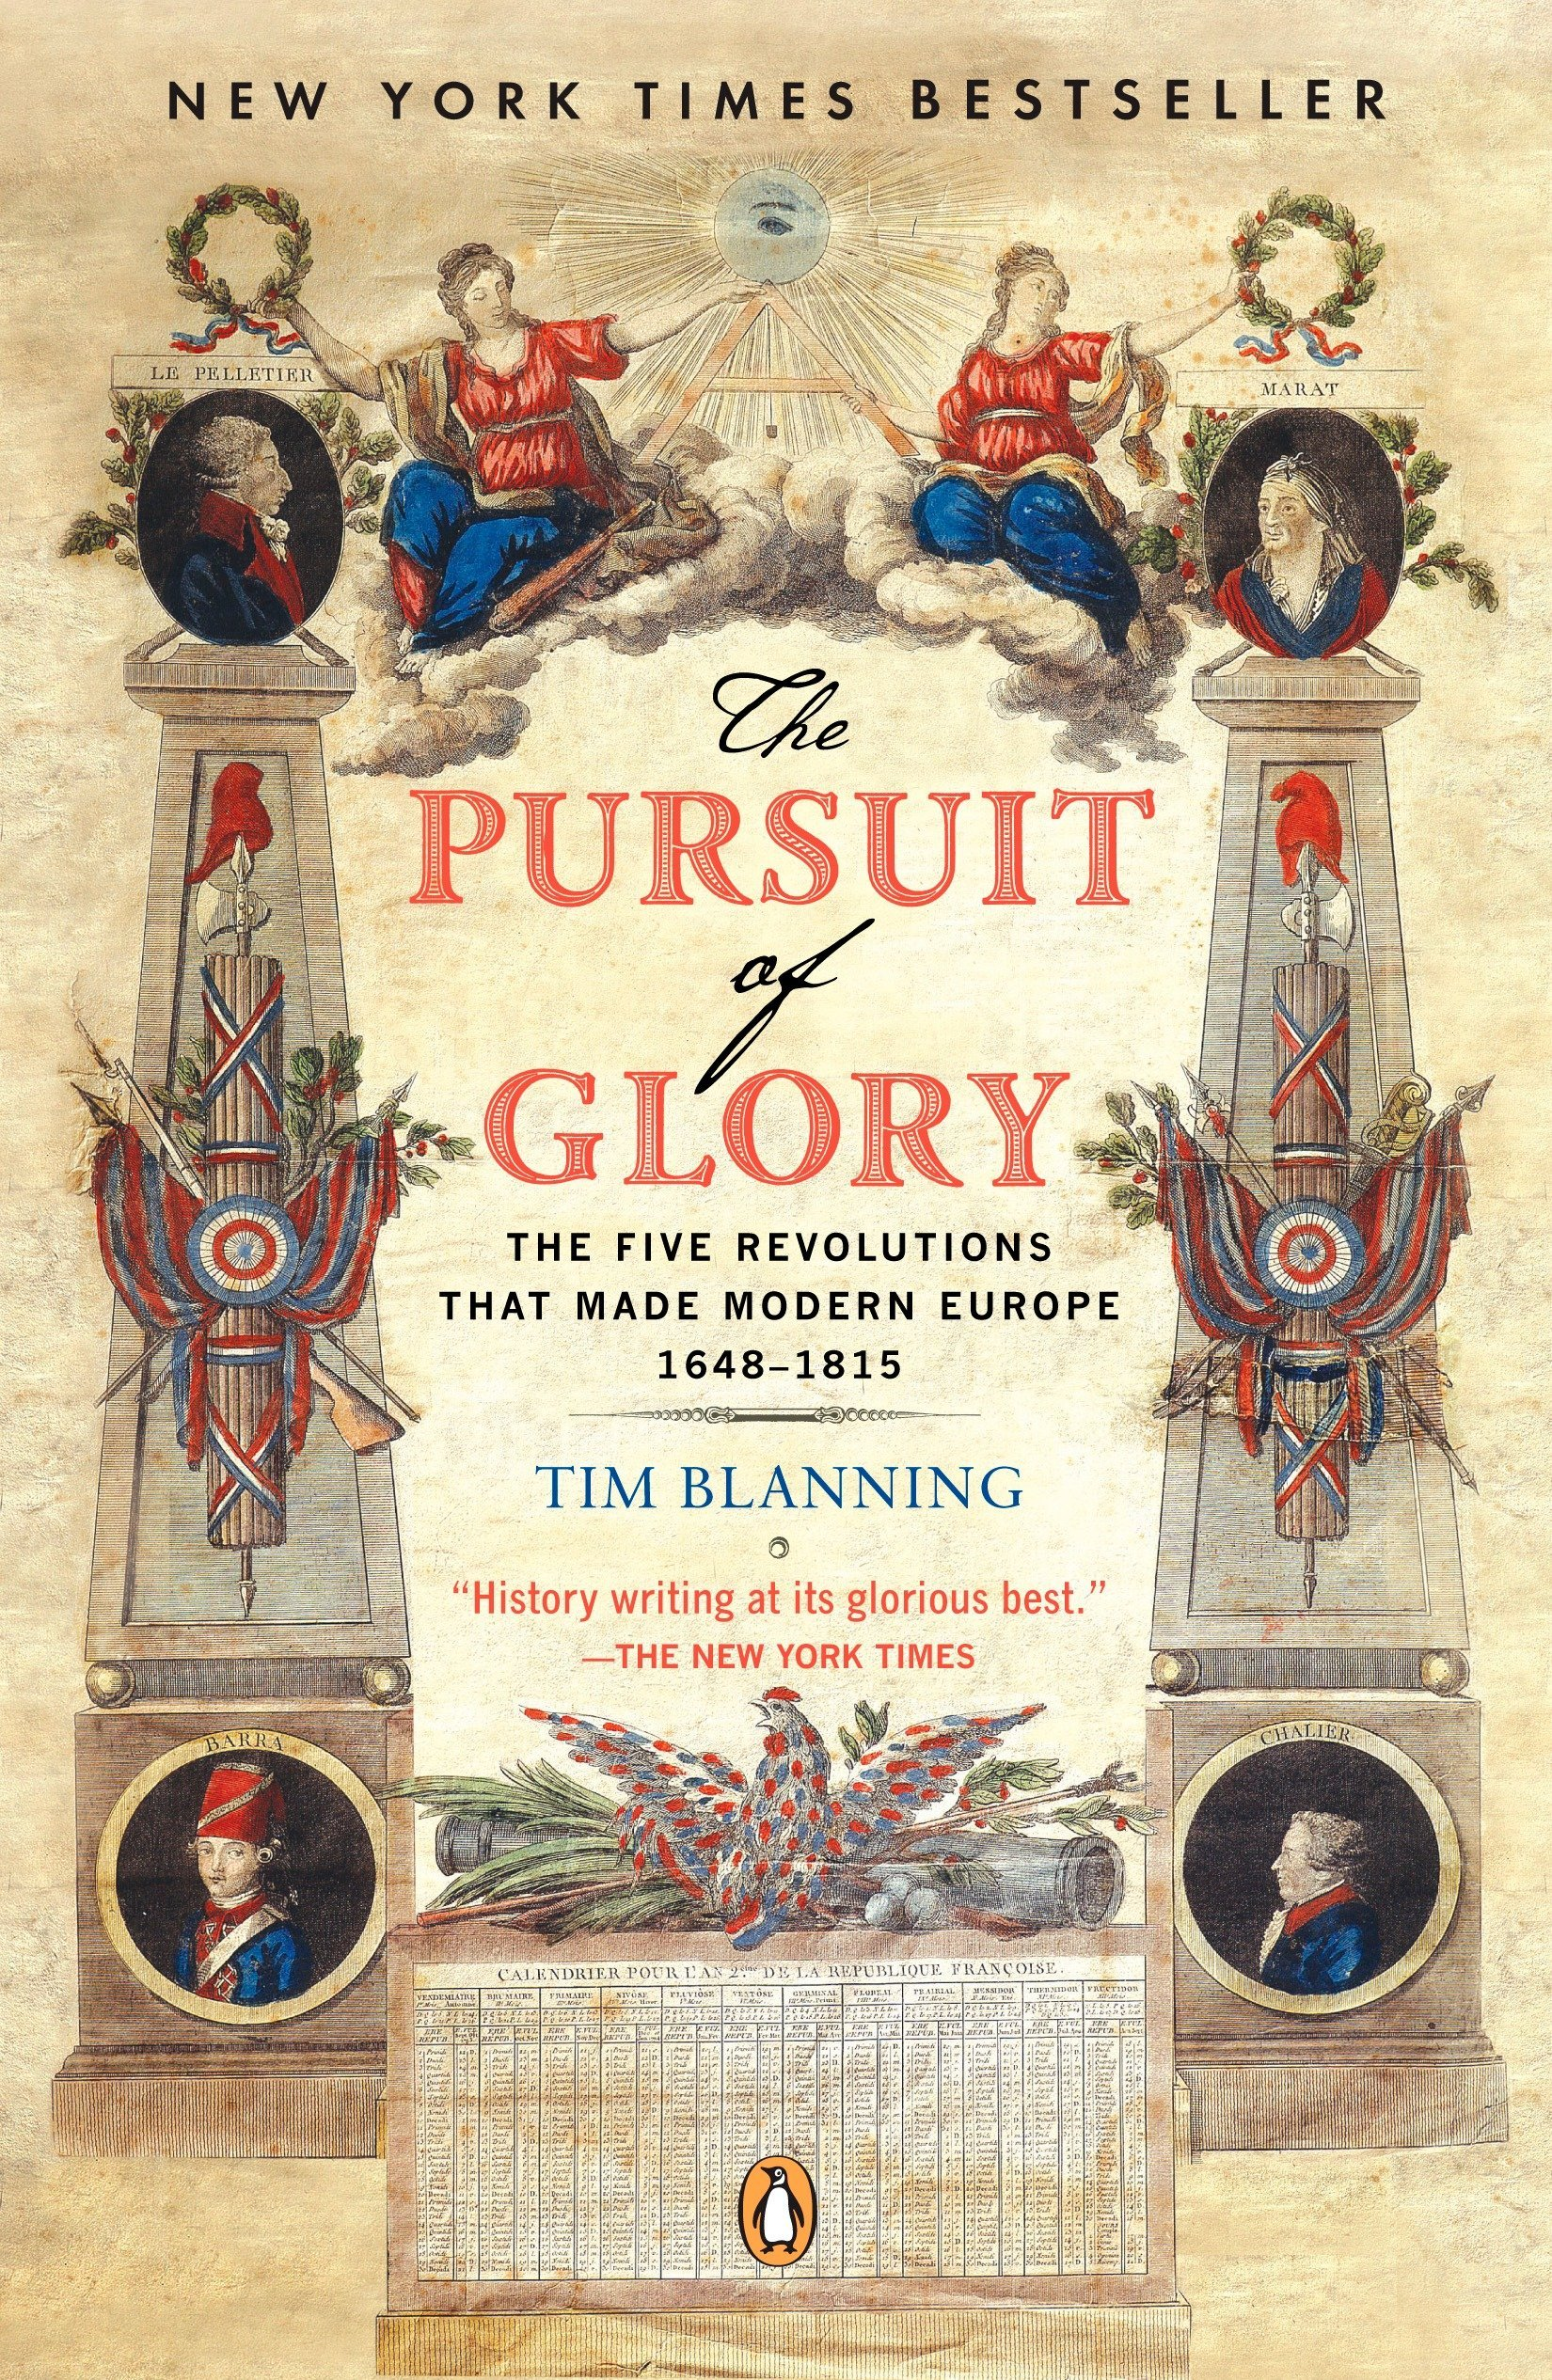 The Pursuit of Glory: The Five Revolutions that Made Modern Europe: 1648-1815 (The Penguin History of Europe) pdf